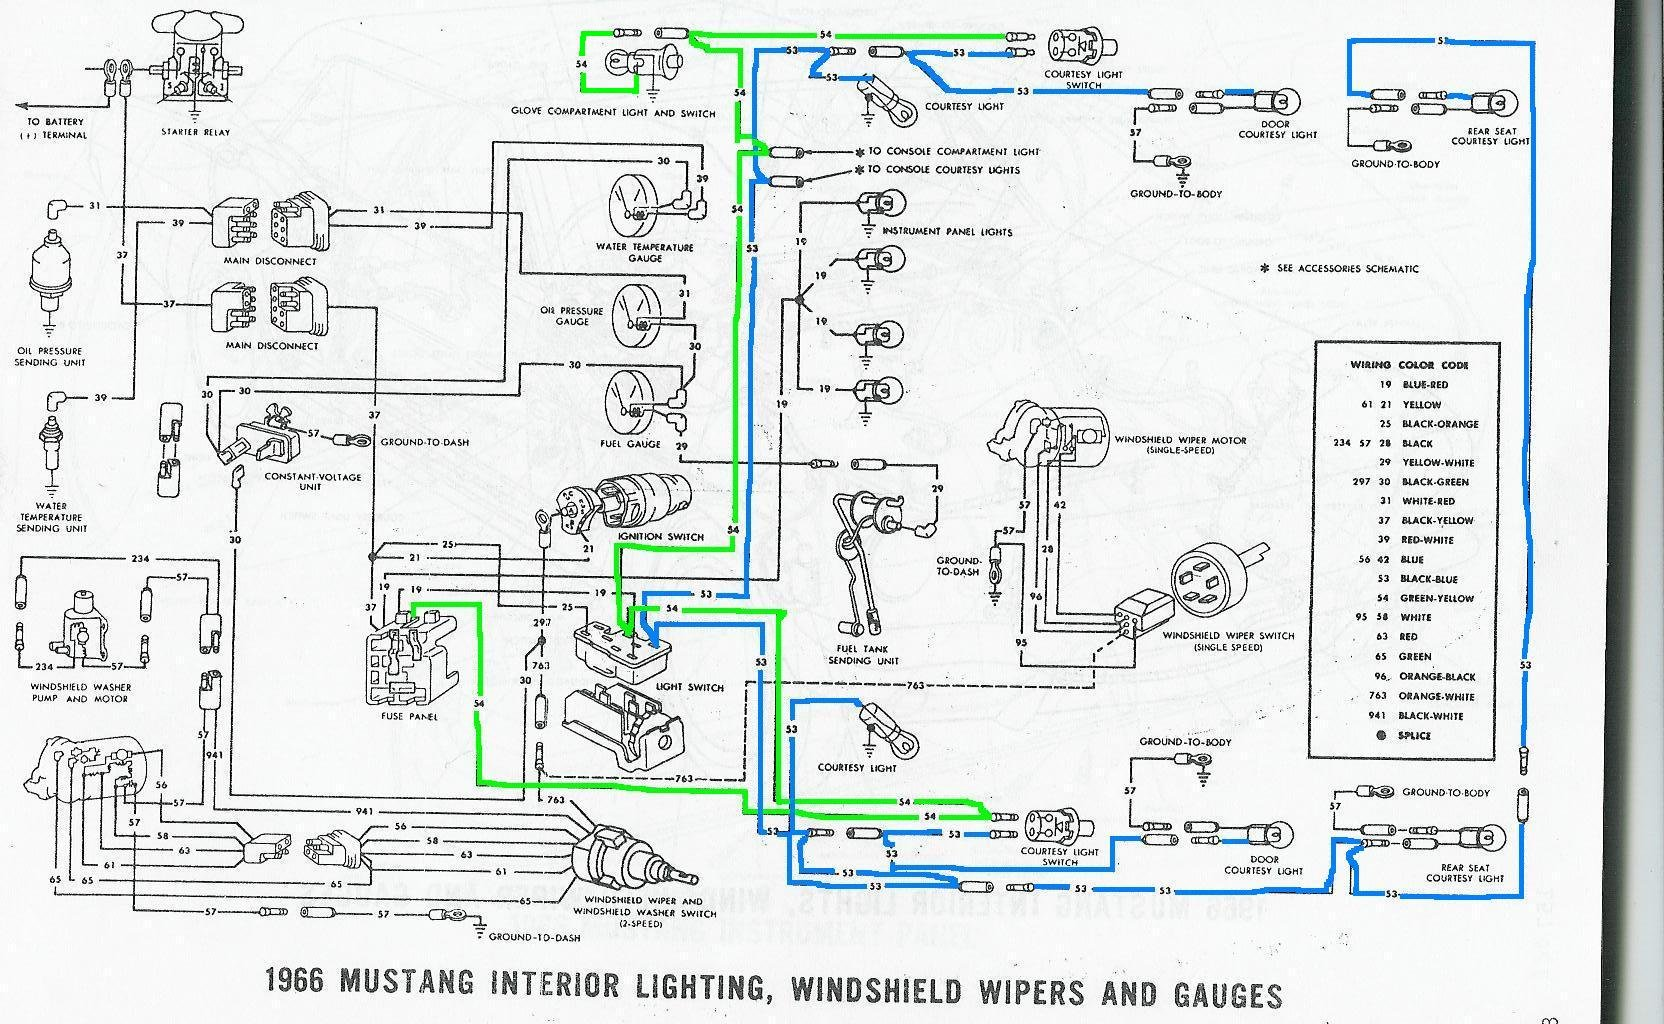 hight resolution of courtesy lights not working ford mustang forum 1965 ford mustang wiring diagram 1966 mustang courtesy light wiring diagram